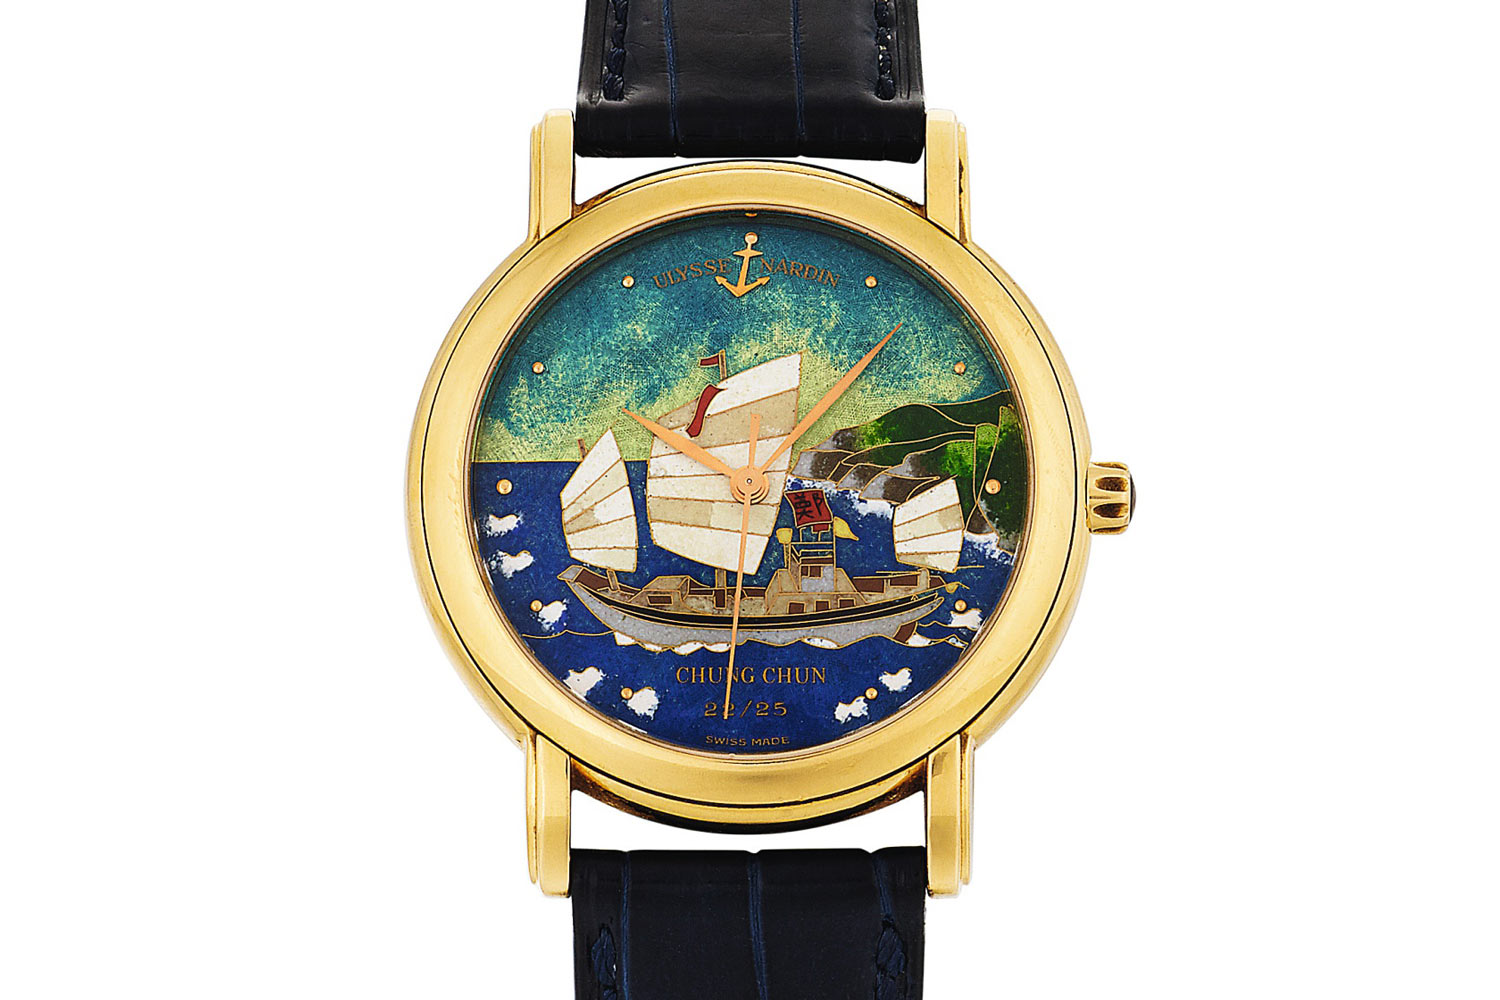 Lot 452: Ulysse Nardin. San Marco Chung Chun Limited Edition. Pink gold wristwatch with cloisonné enamel dial, circa 1998